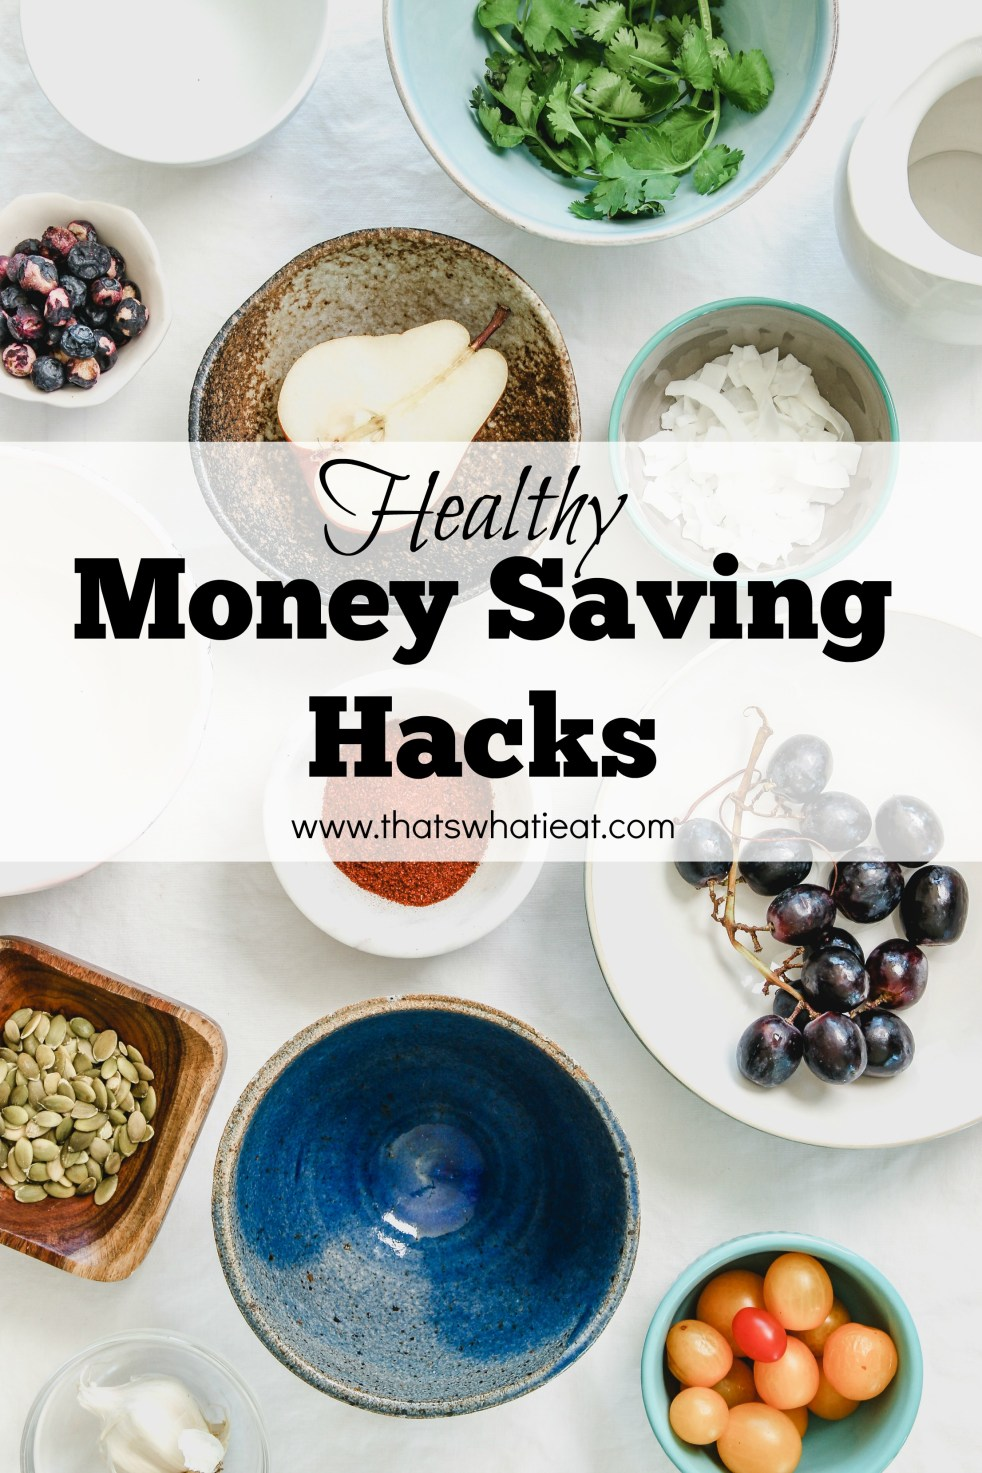 Healthy Money Savings Hacks